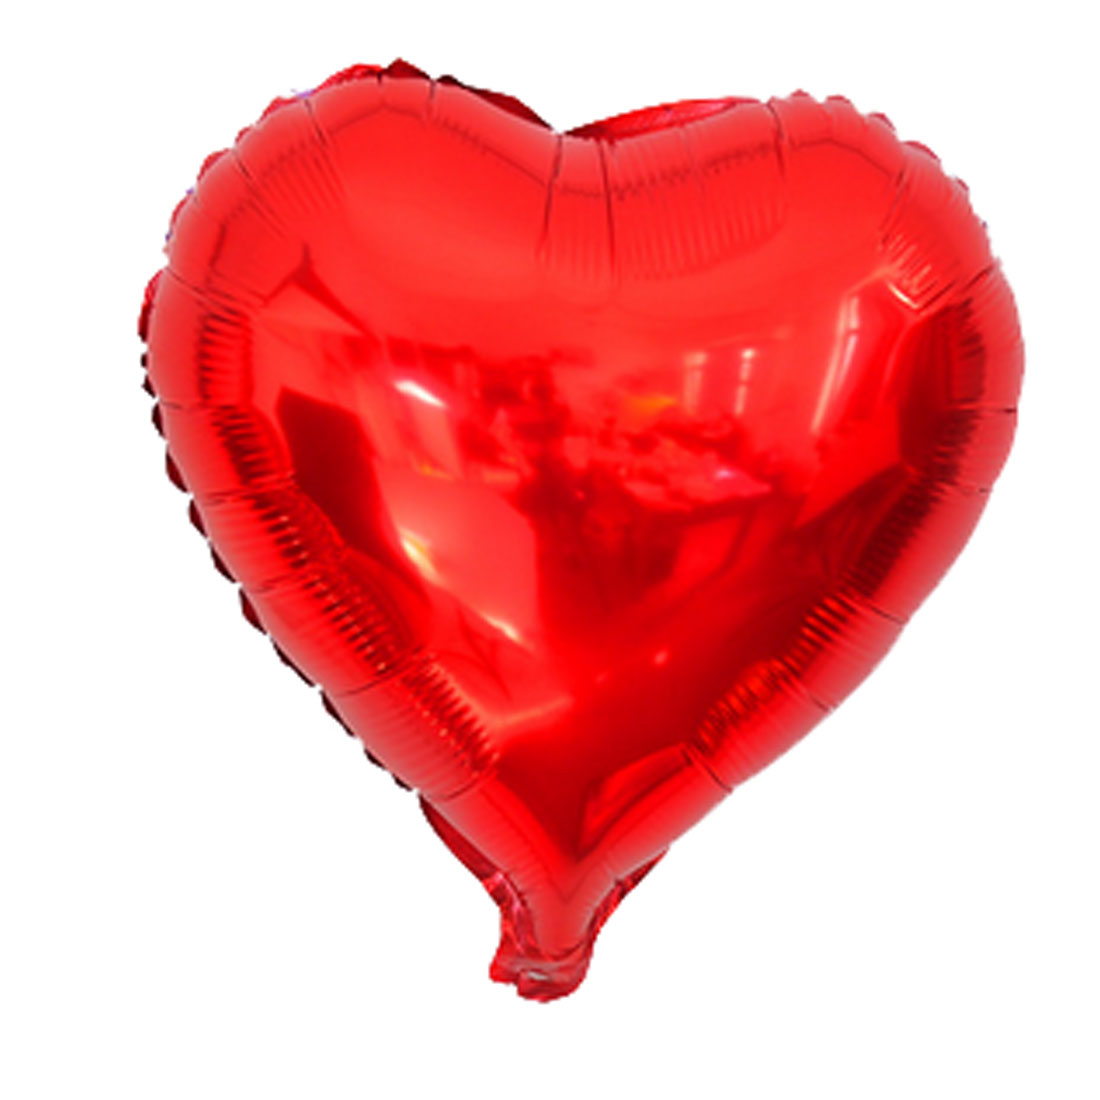 Unique Bargains Foil Heart Shape Balloon Wedding Birthday Celebration Decor Red 10""